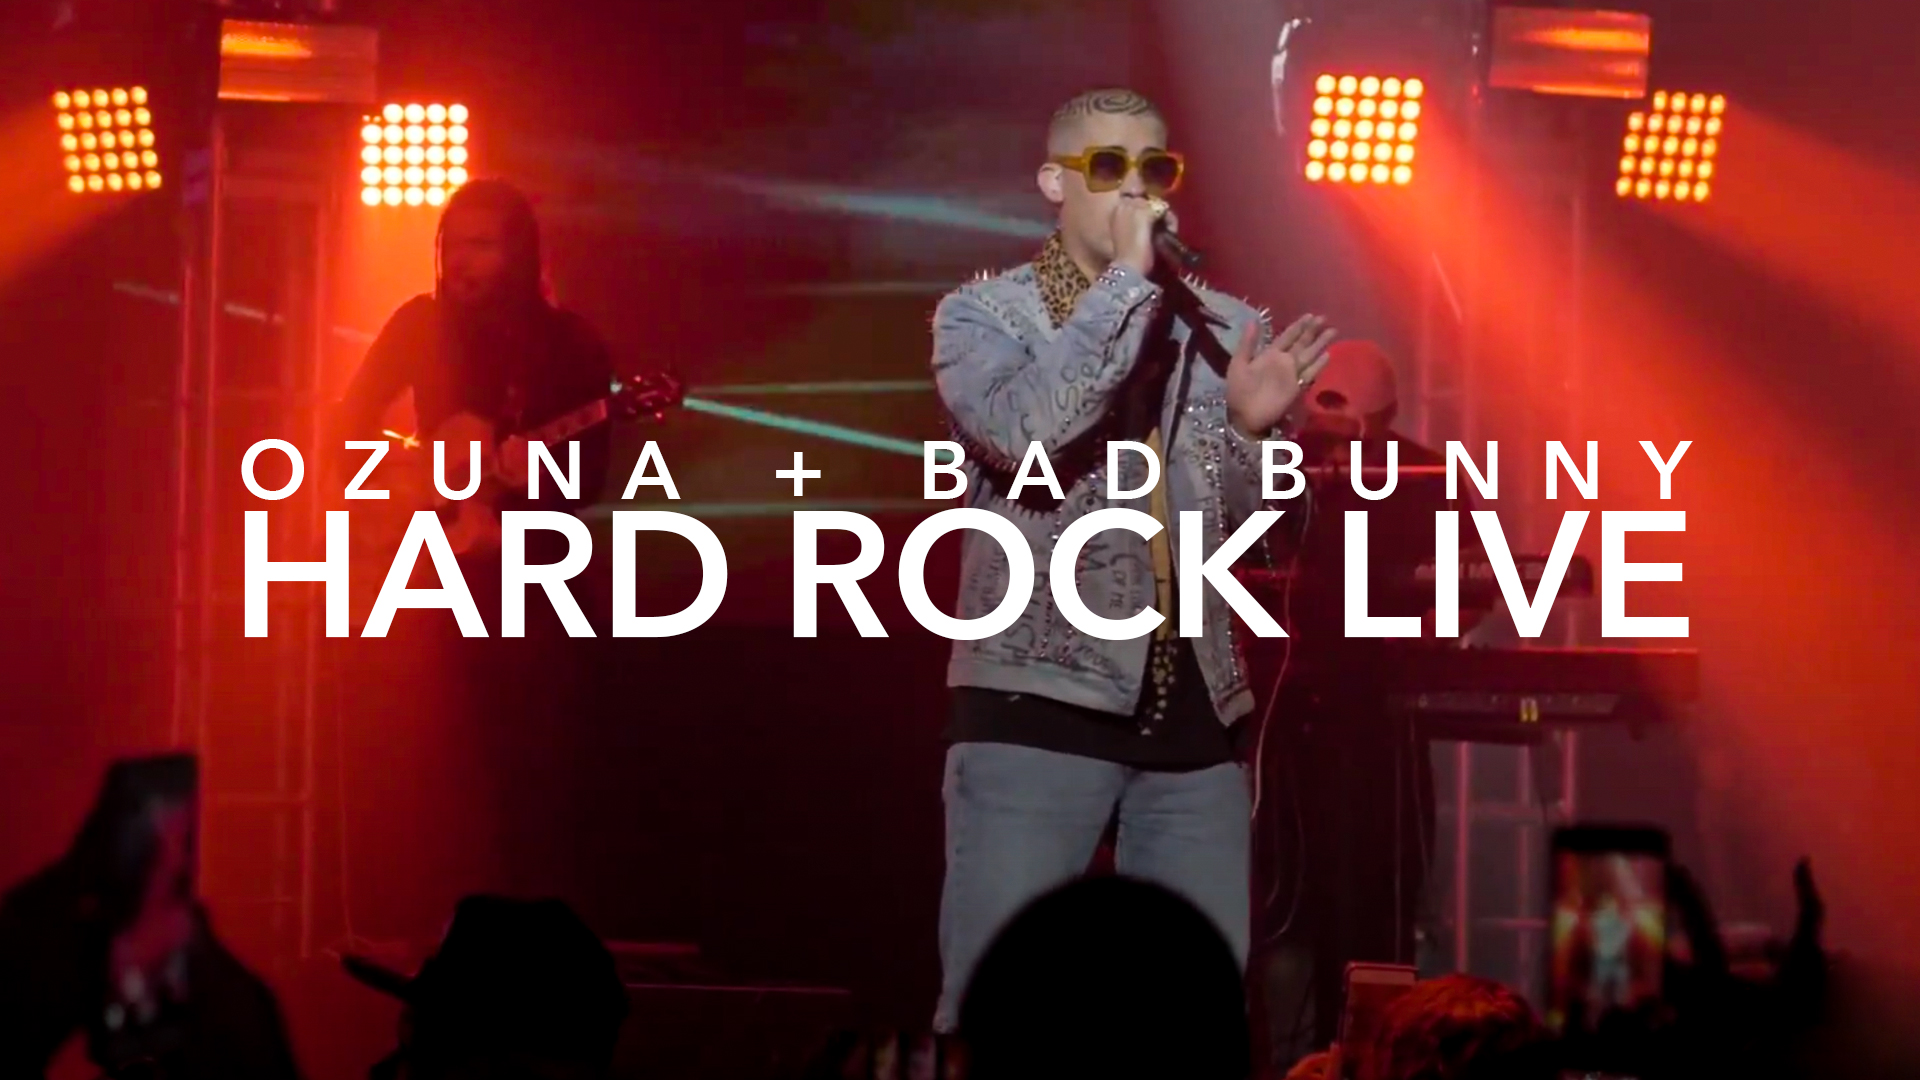 OZUNA + BAD BUNNY + TRAP EN CONCIERTO + HARD ROCK LIVE MIAMI